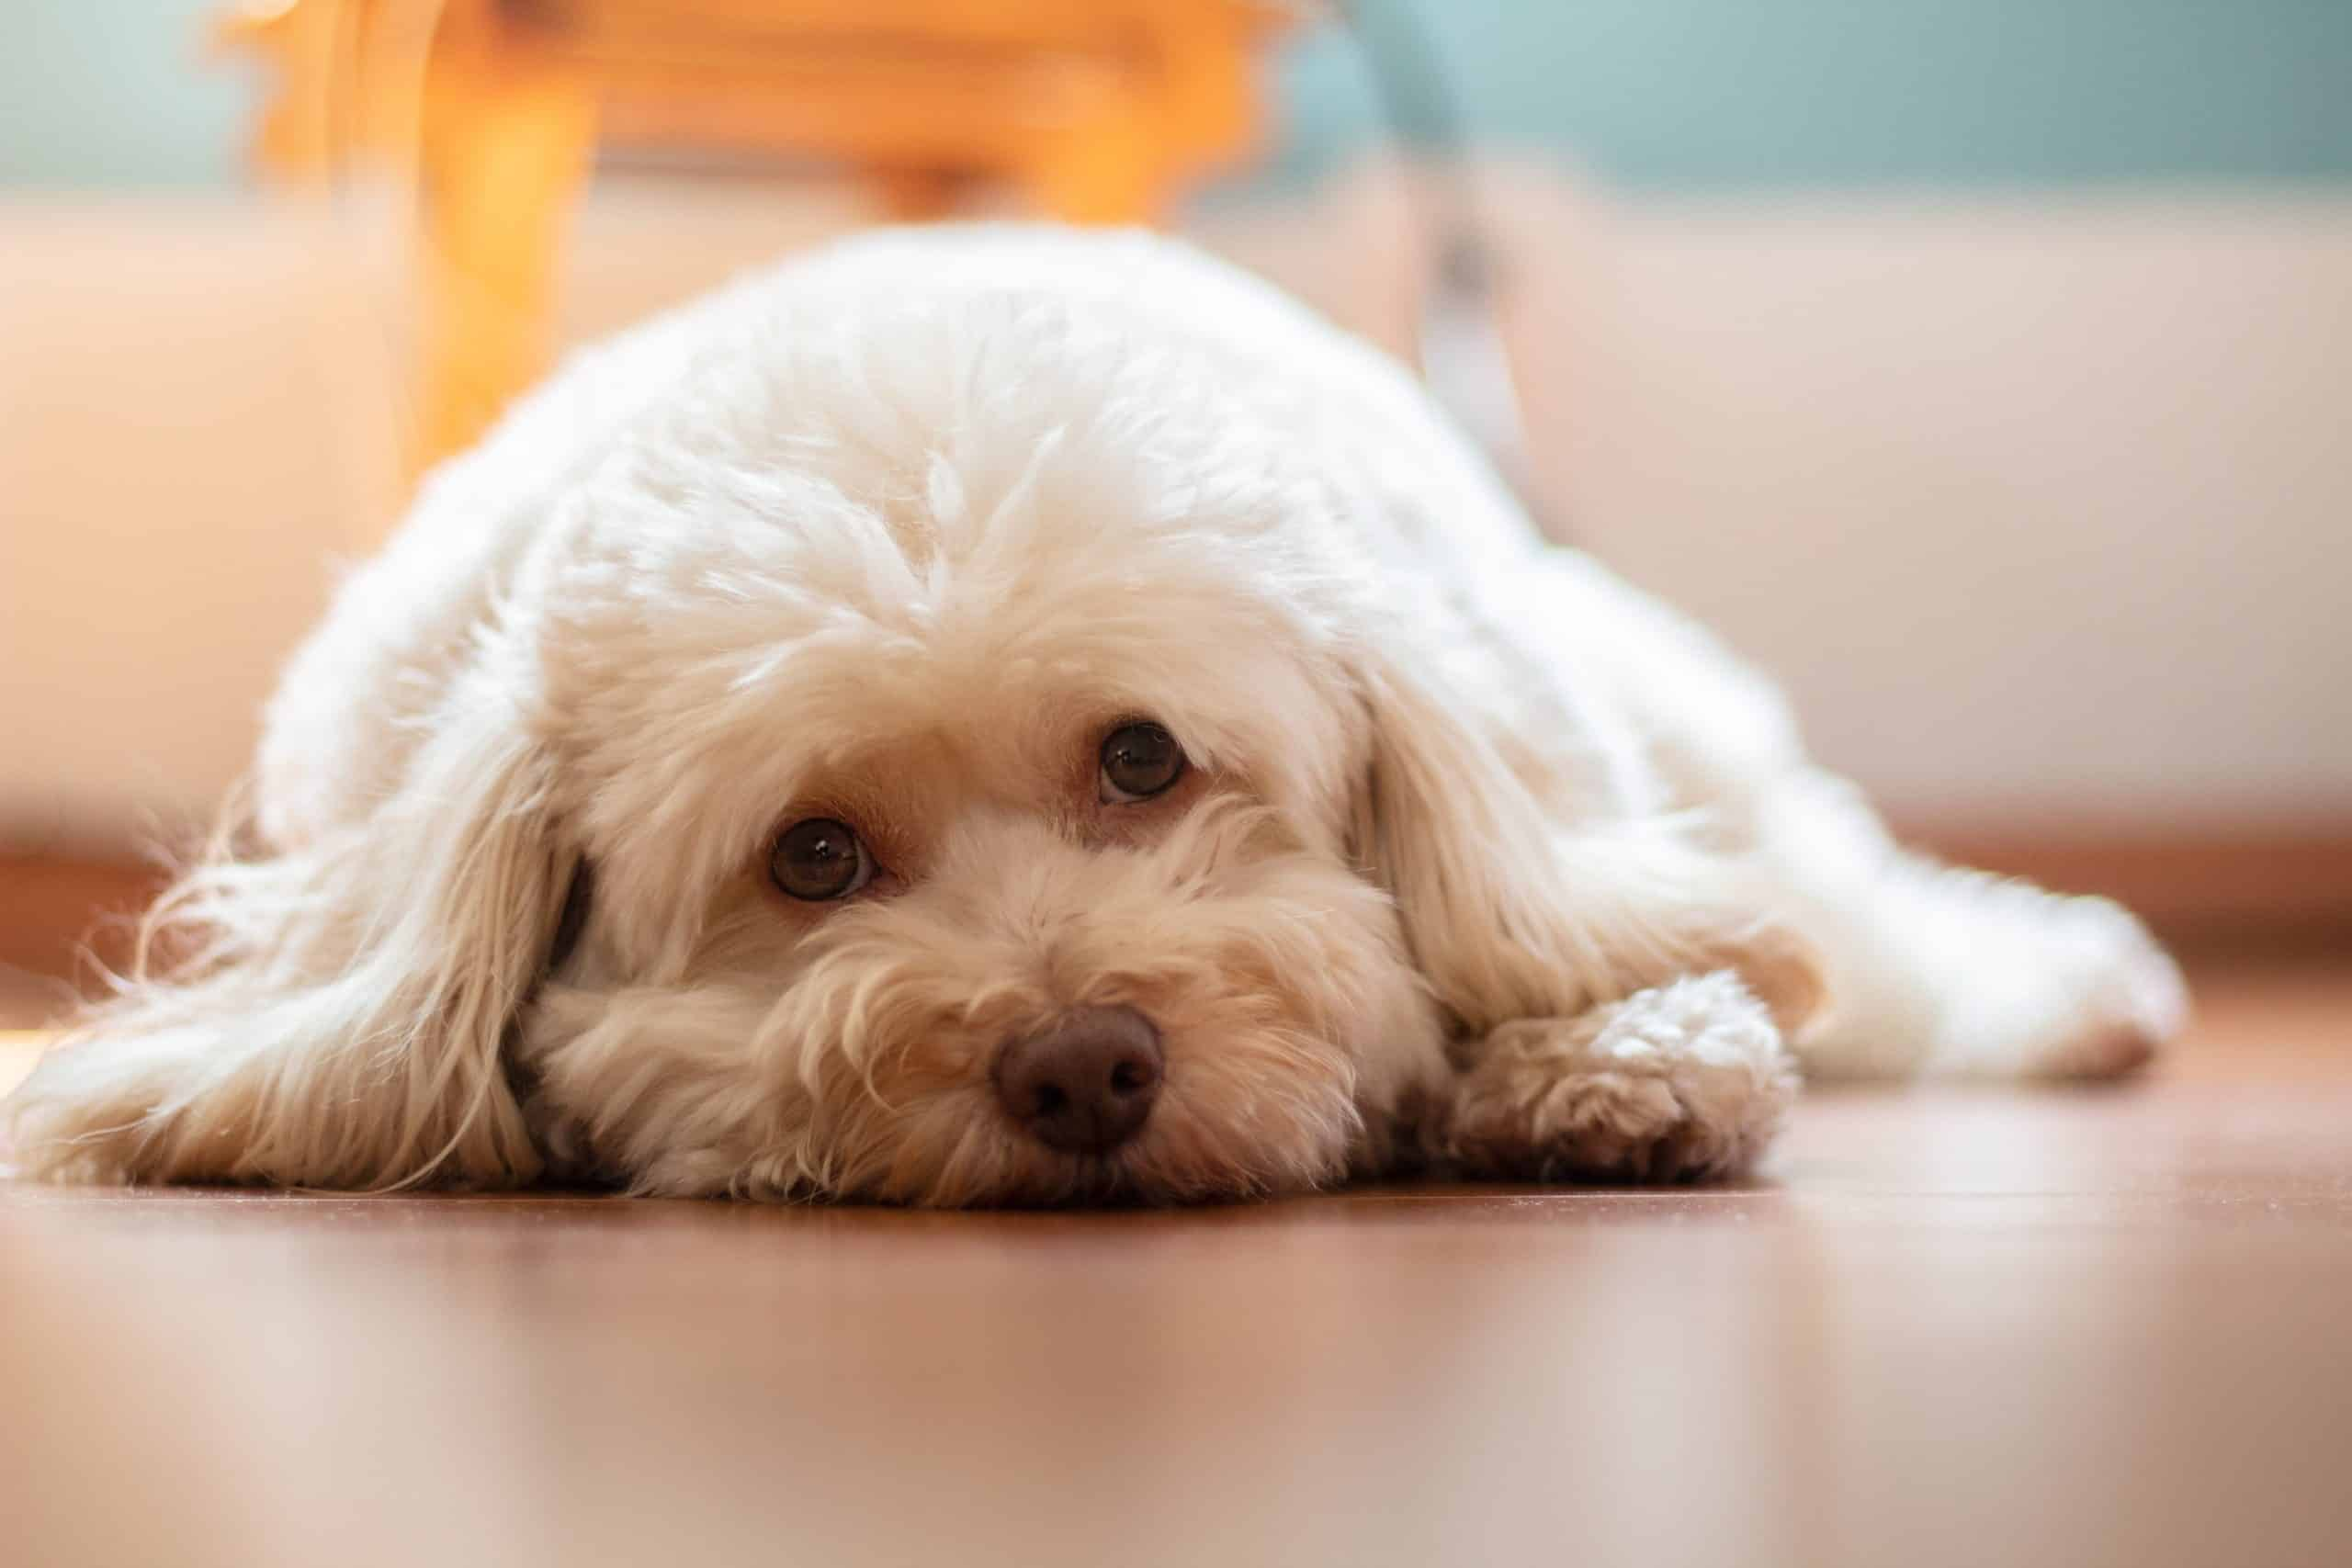 White poodle lays on the floor. Small breeds often suffer from congenital limb conformation problems such as luxating patellas, which prevents the dog from squatting properly and impacts the muscle contraction required to express the anal sacs when the dog poops.